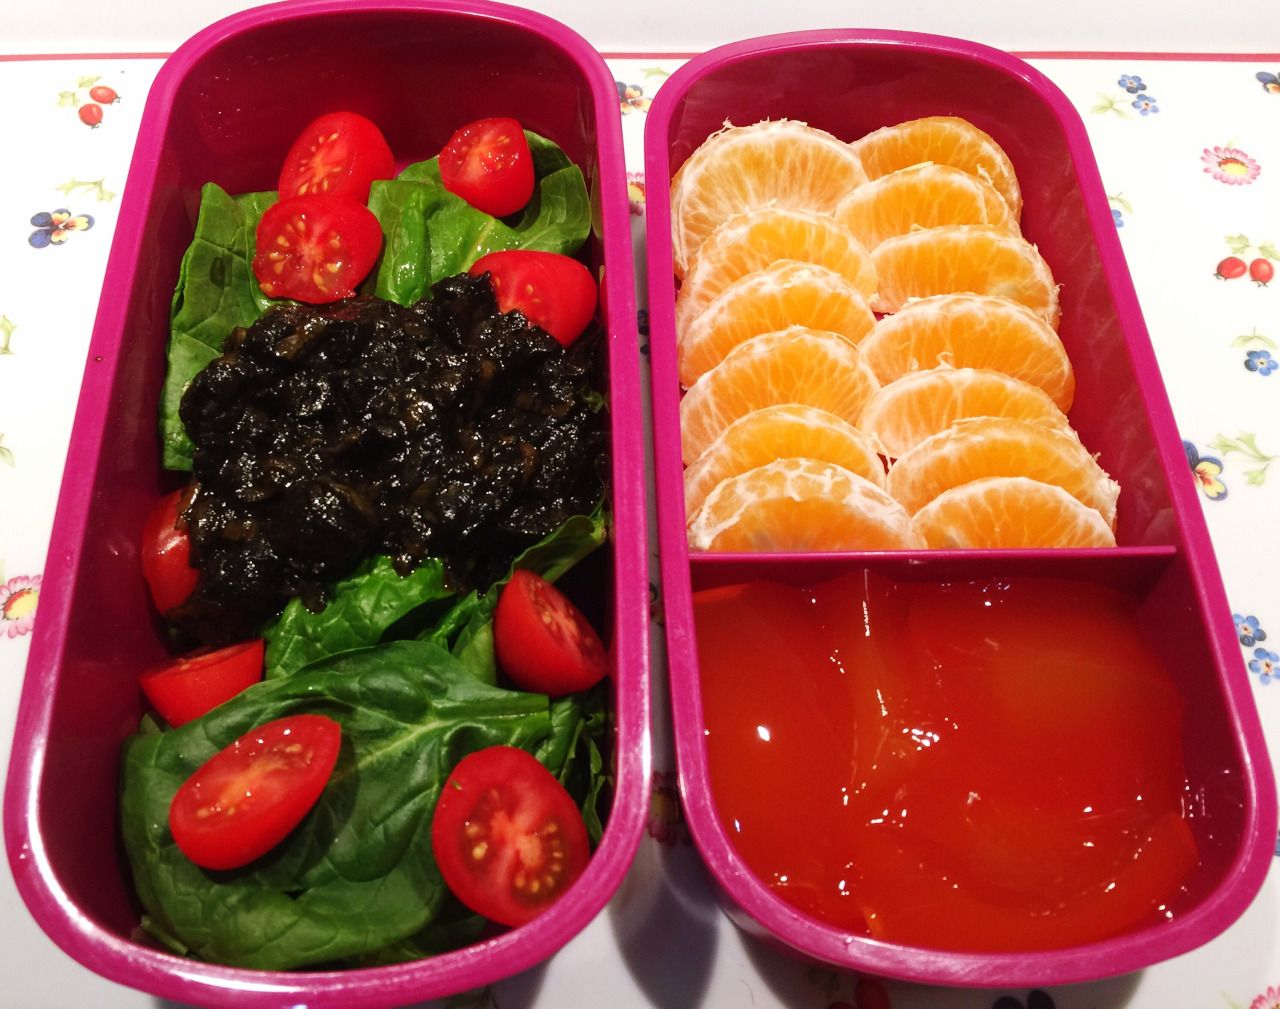 Hers; squid in ink salad, sugar free raspberry jelly and a clementine